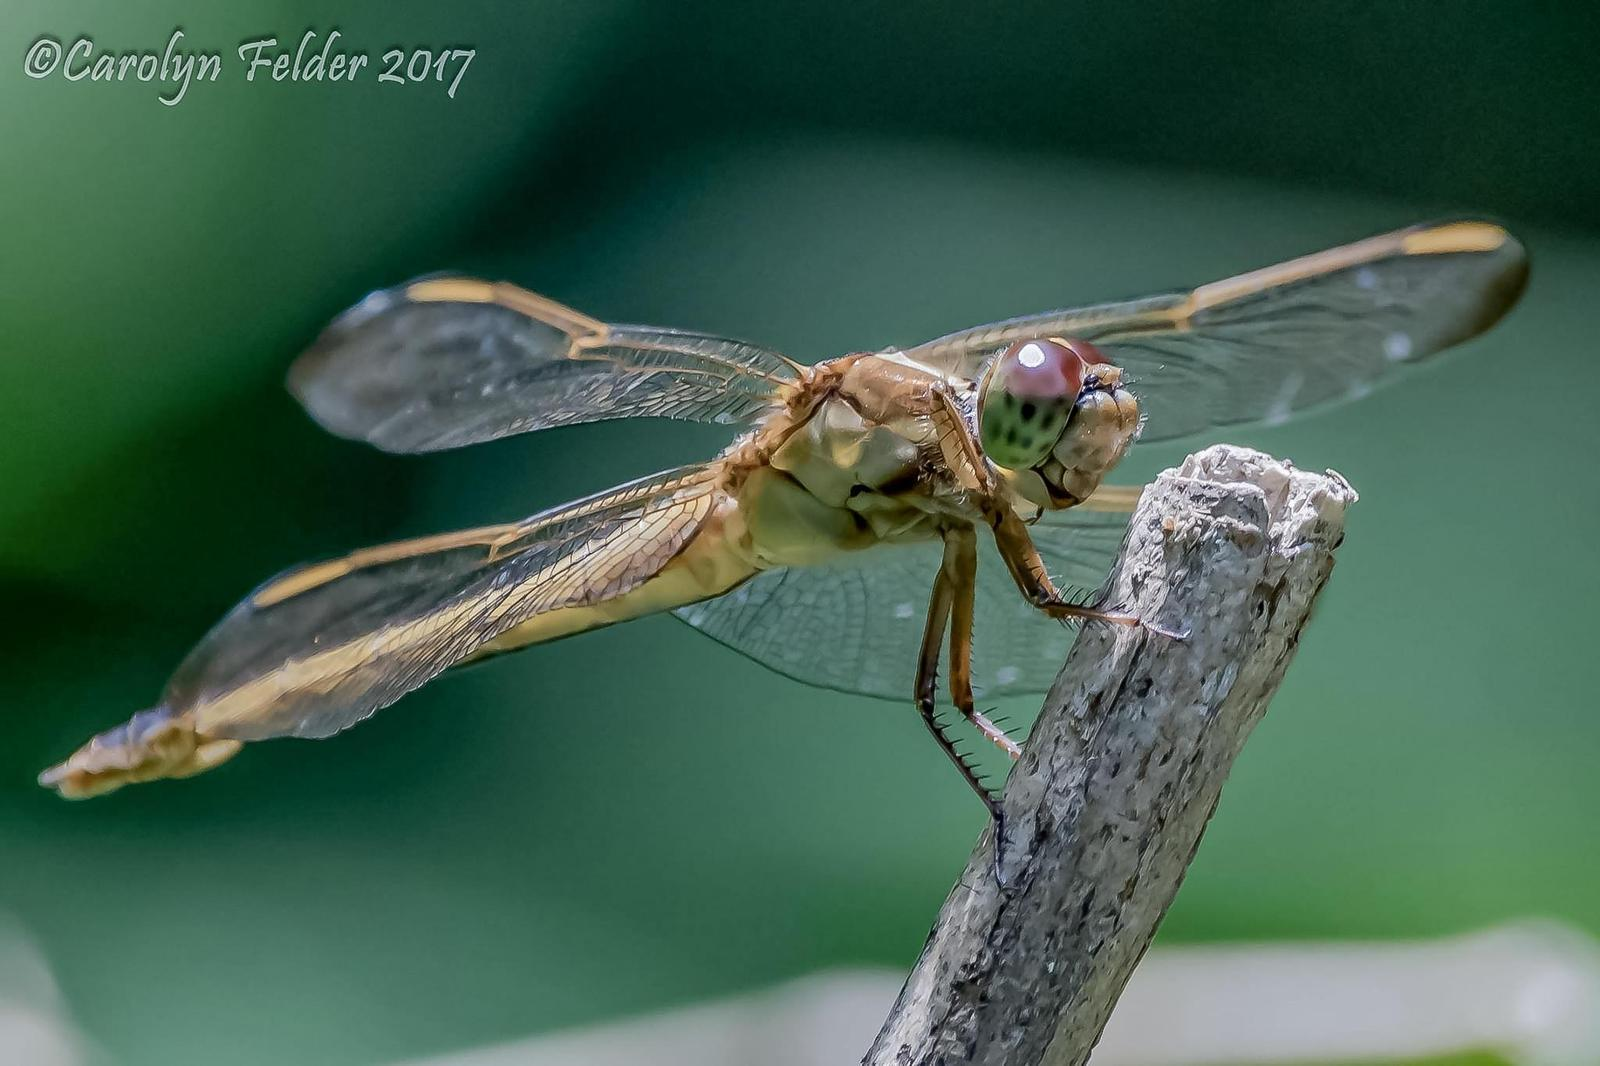 Common Green Darner Photo by Carolyn Felder